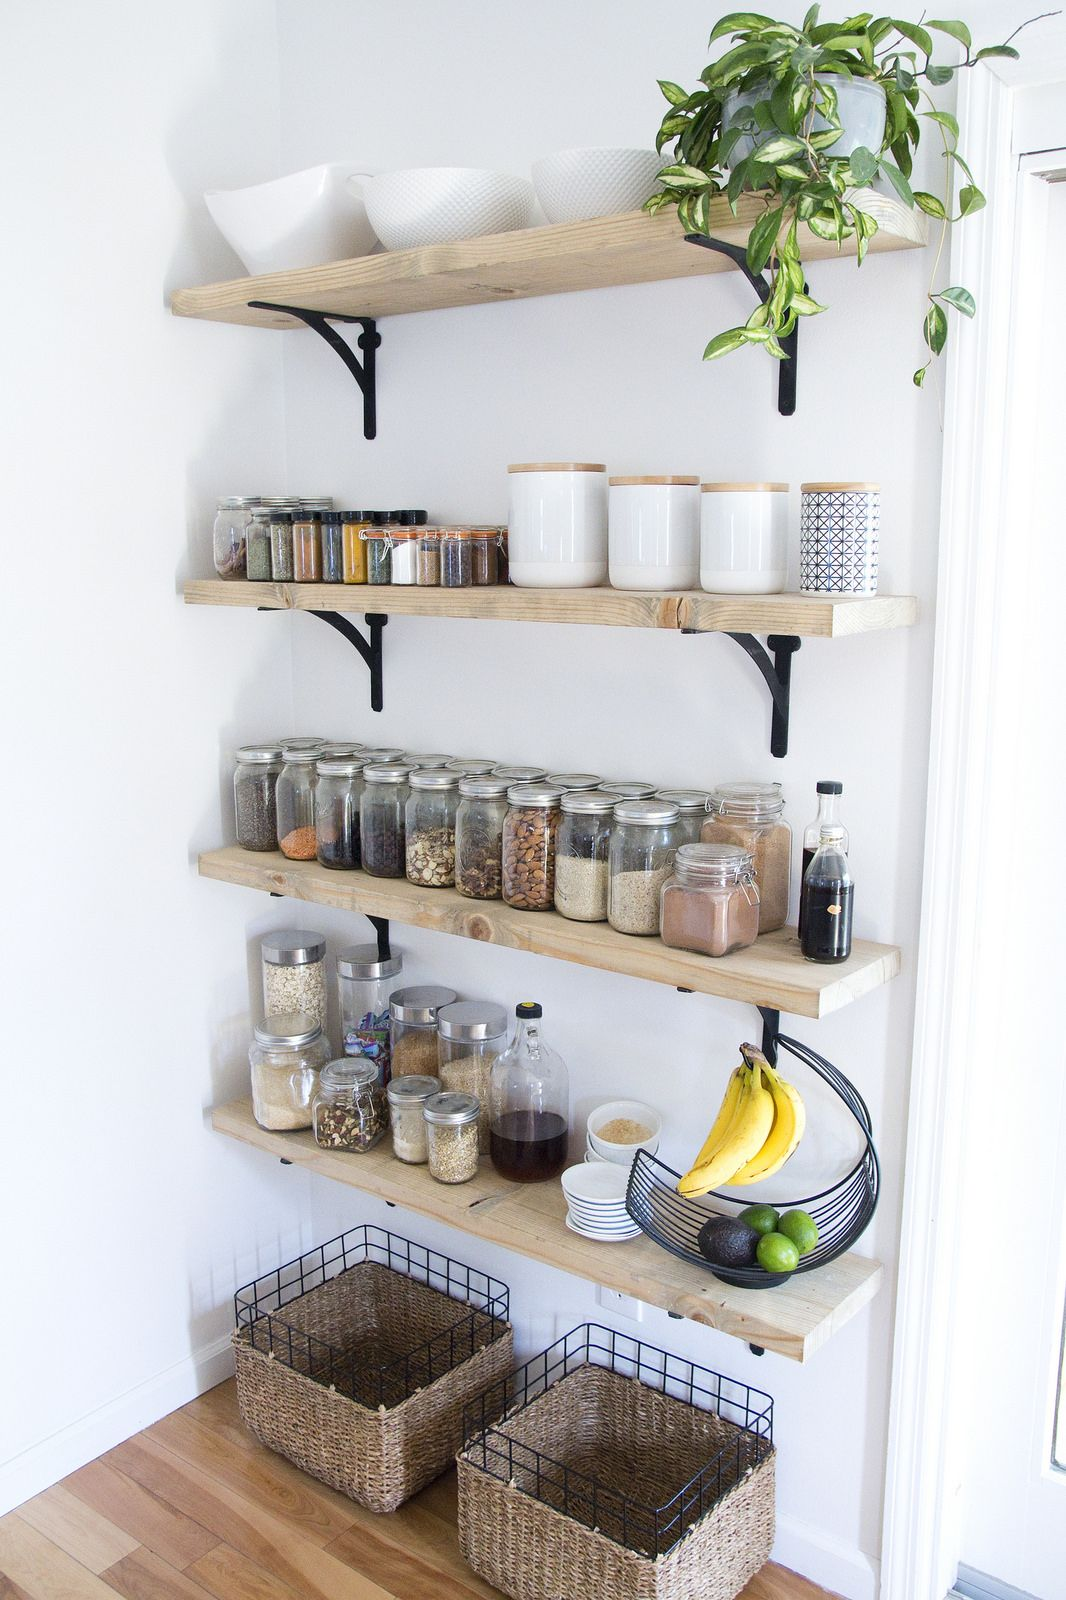 8 Tips For Creating Successful Open Shelving And A Pantry